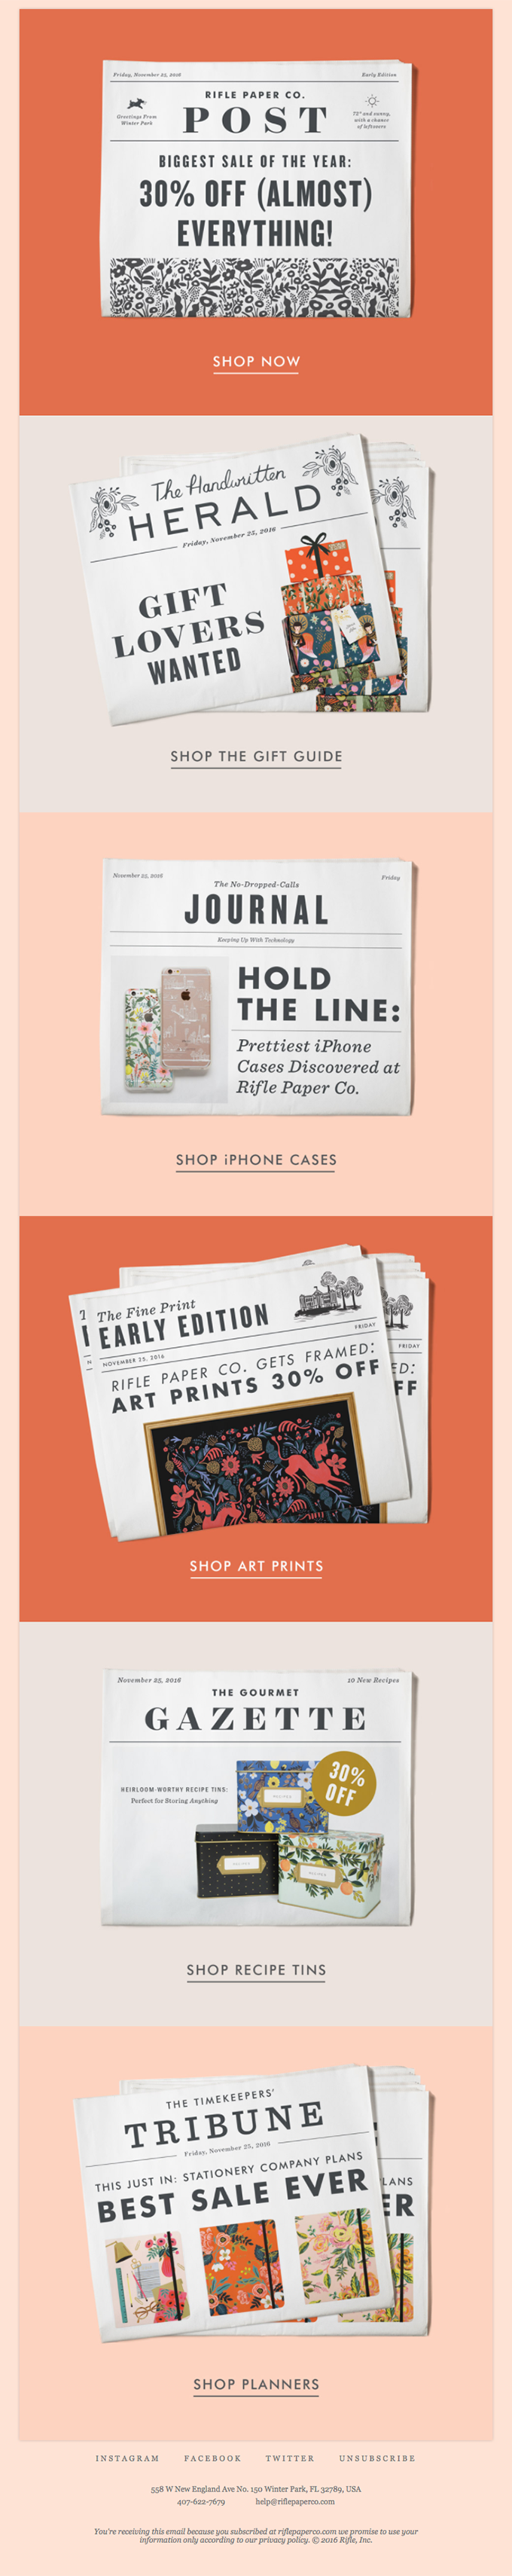 Breaking News: 30% Off (Almost) Everything